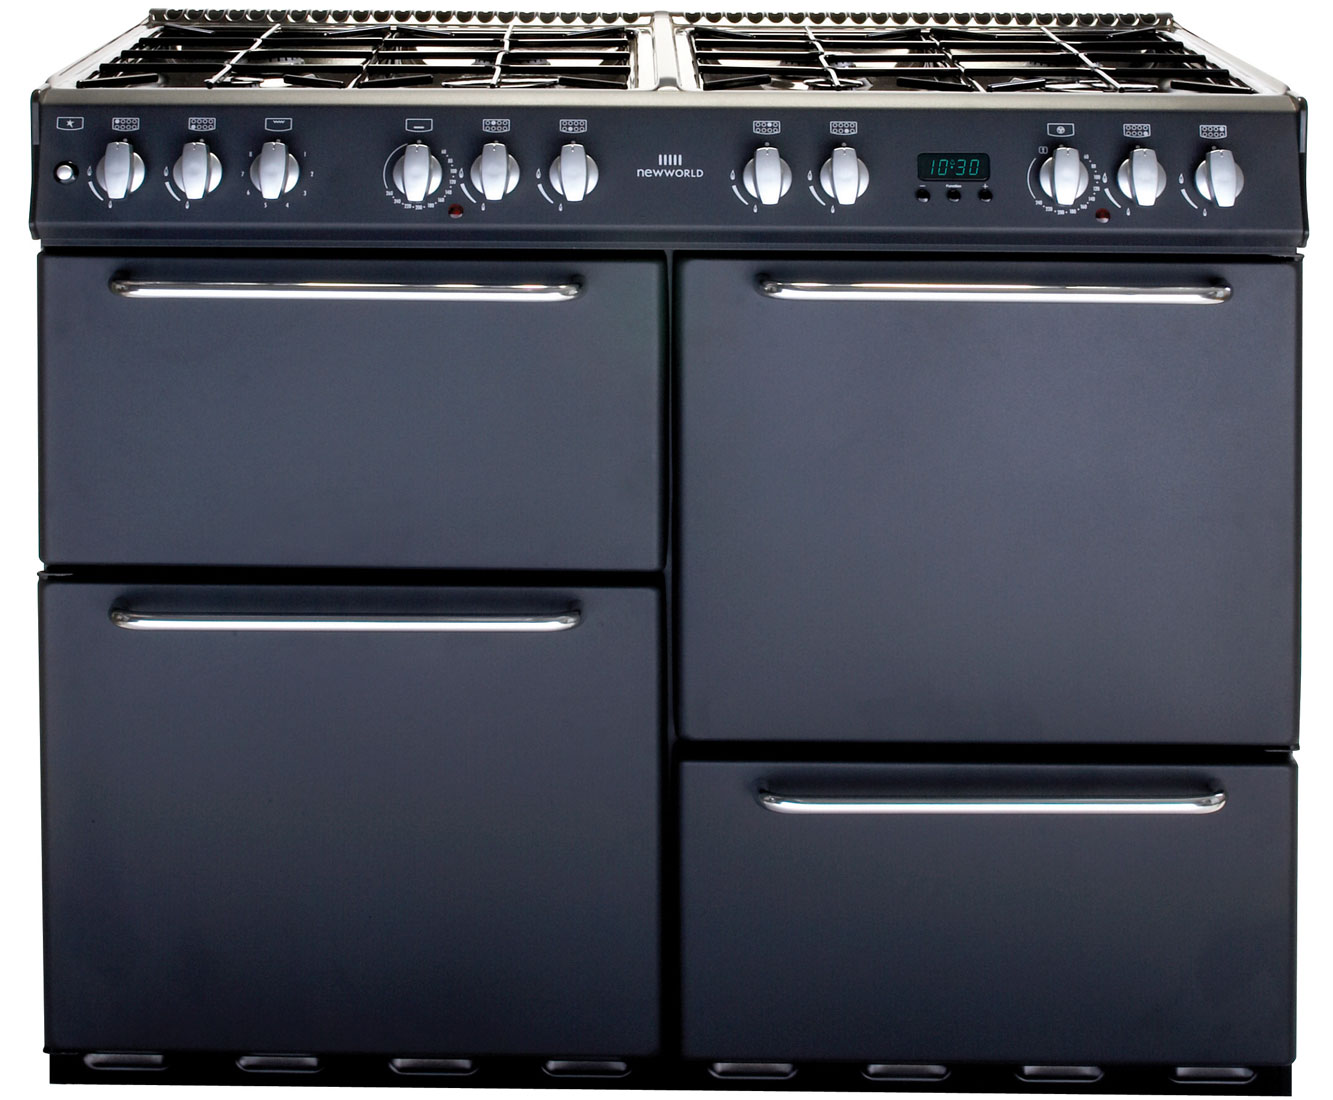 Newworld NW100GT 100cm Gas Range Cooker - Charcoal